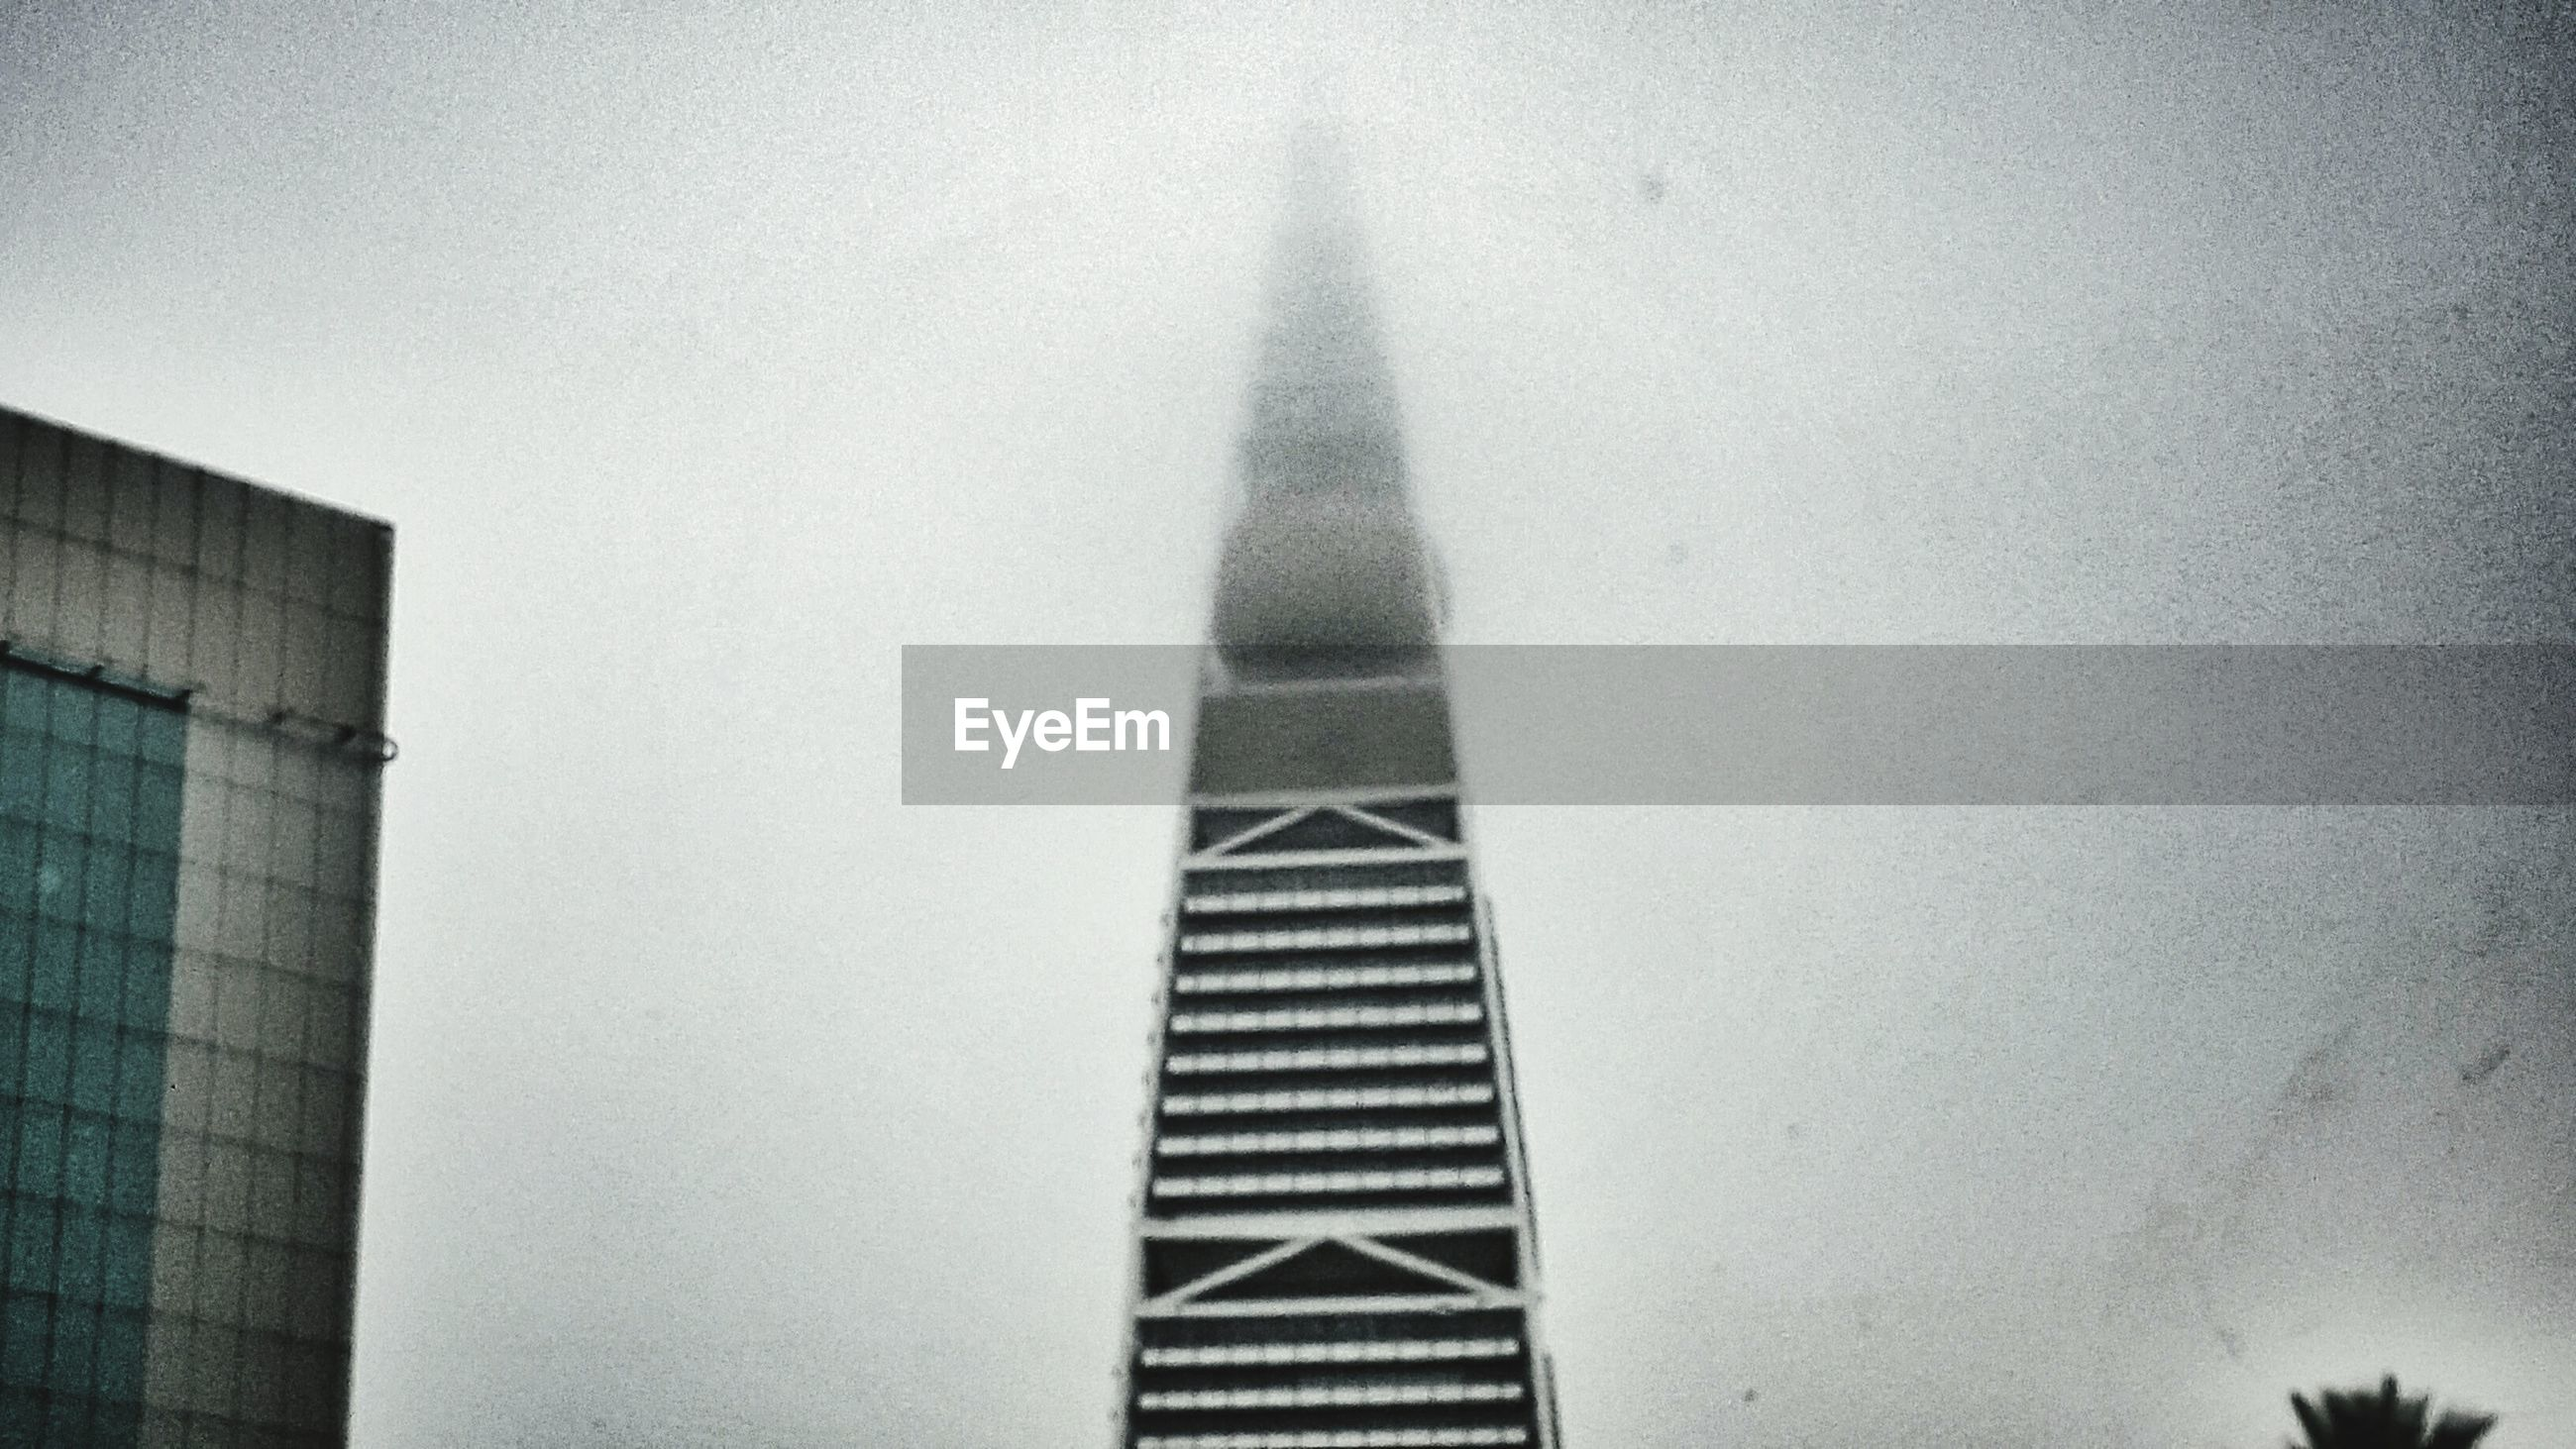 architecture, built structure, building exterior, no people, outdoors, low angle view, city, sky, day, skyscraper